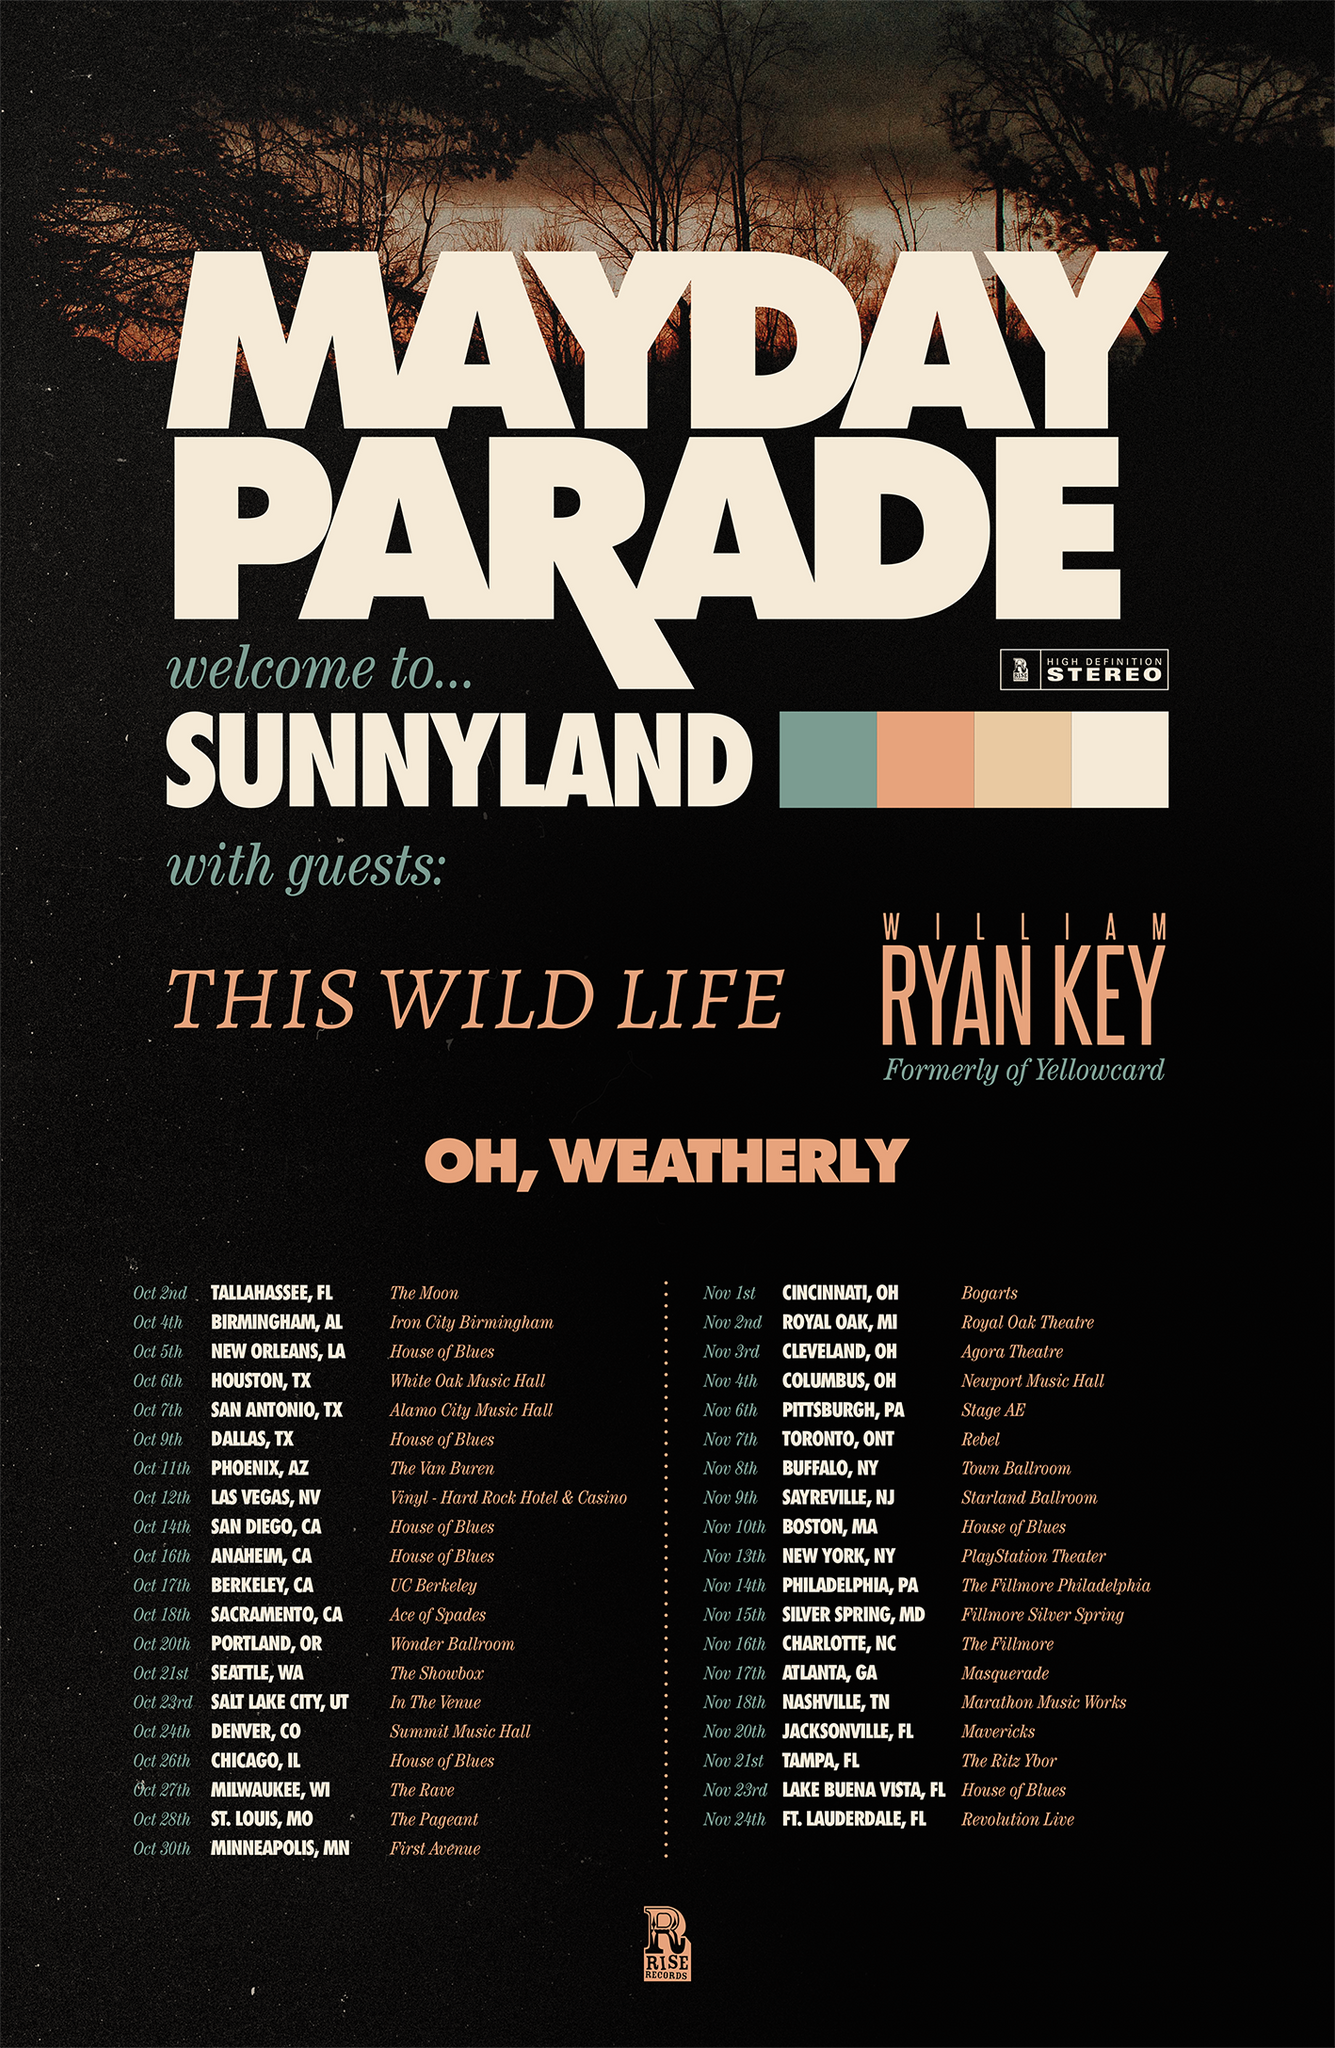 10062018 houston tx white oak music hall mayday parade ticket 10062018 houston tx white oak music hall mayday parade ticketless vip packages m4hsunfo